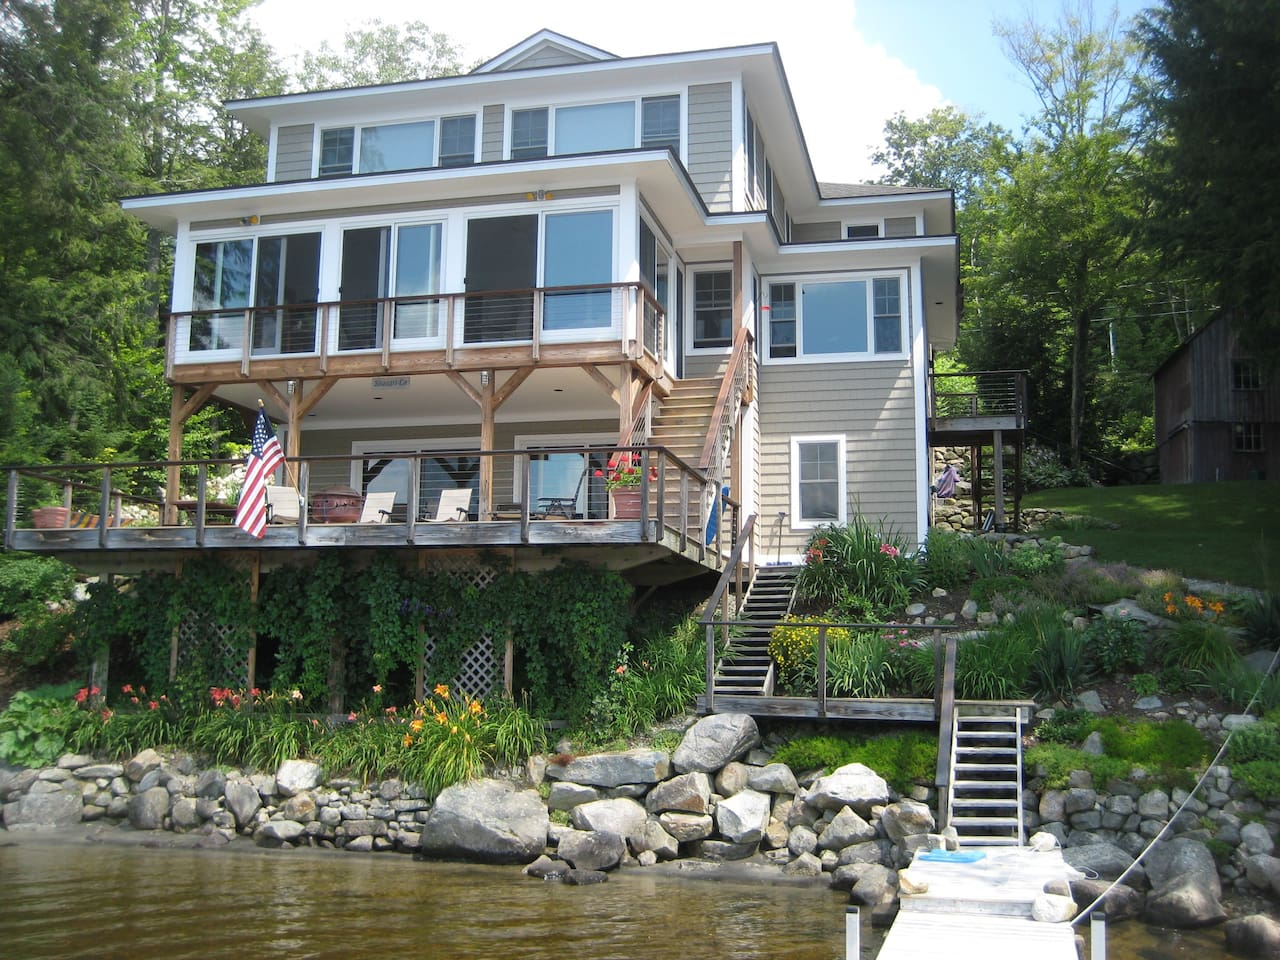 Three story home right on the water with 110 ft of waterfront and dock.